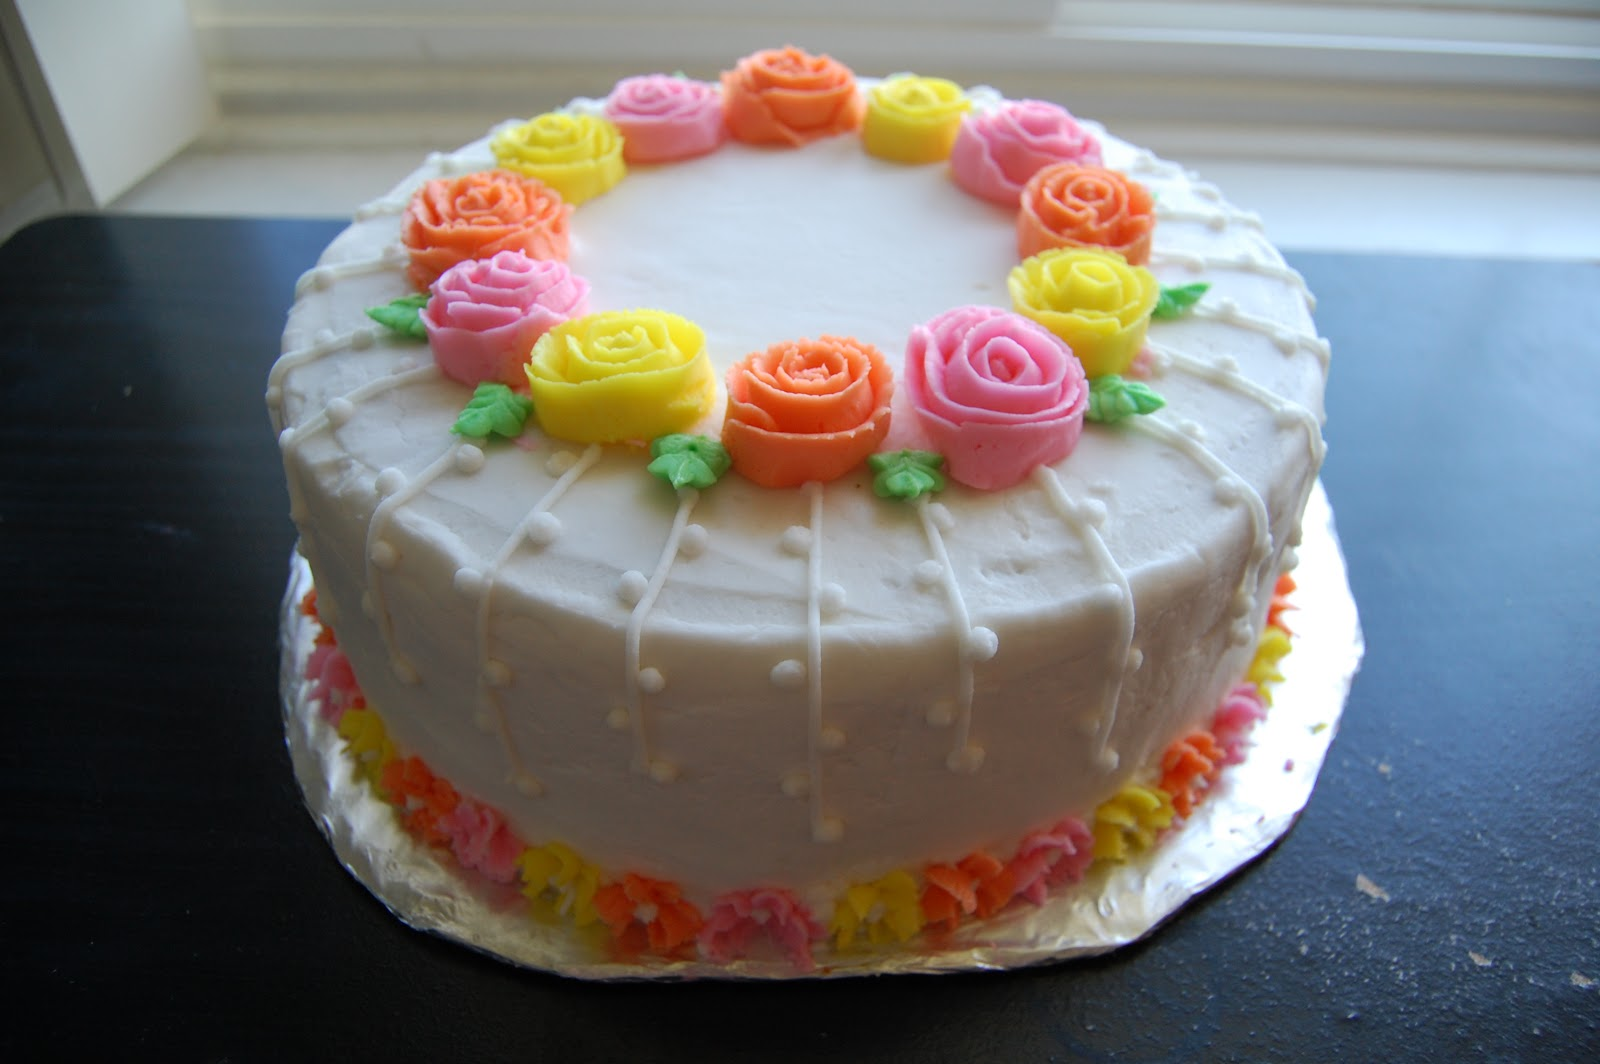 Wilton Cake Decorating Buttercream Icing : ilovecakes: Wilton cake decorating course cakes